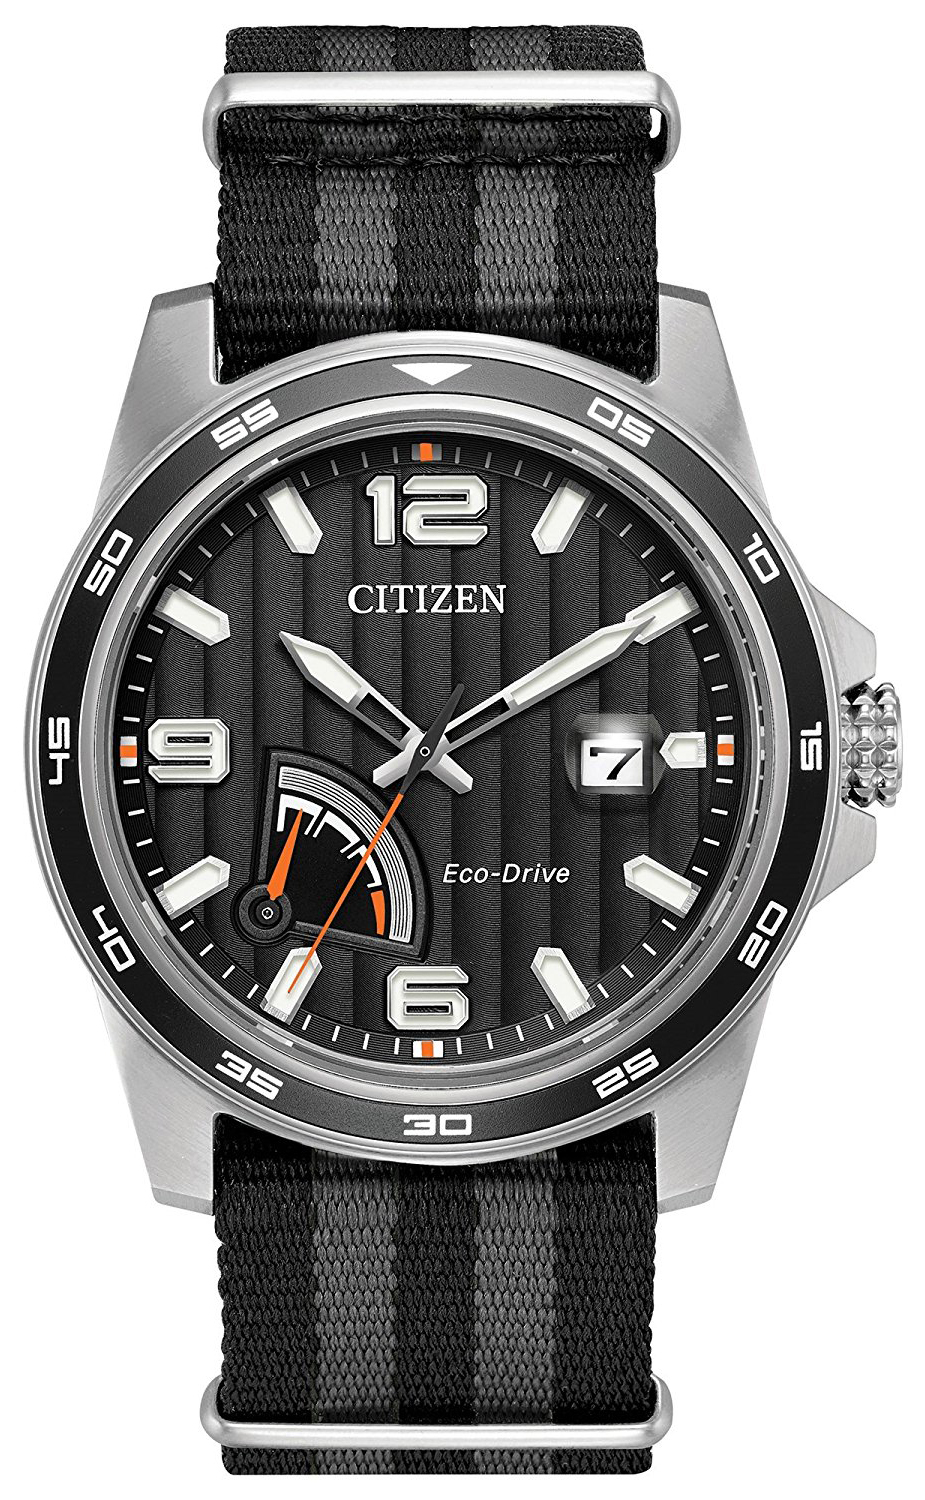 Citizen 99999 Herrklocka AW7030-06E Svart/Stål Ø41 mm - Citizen